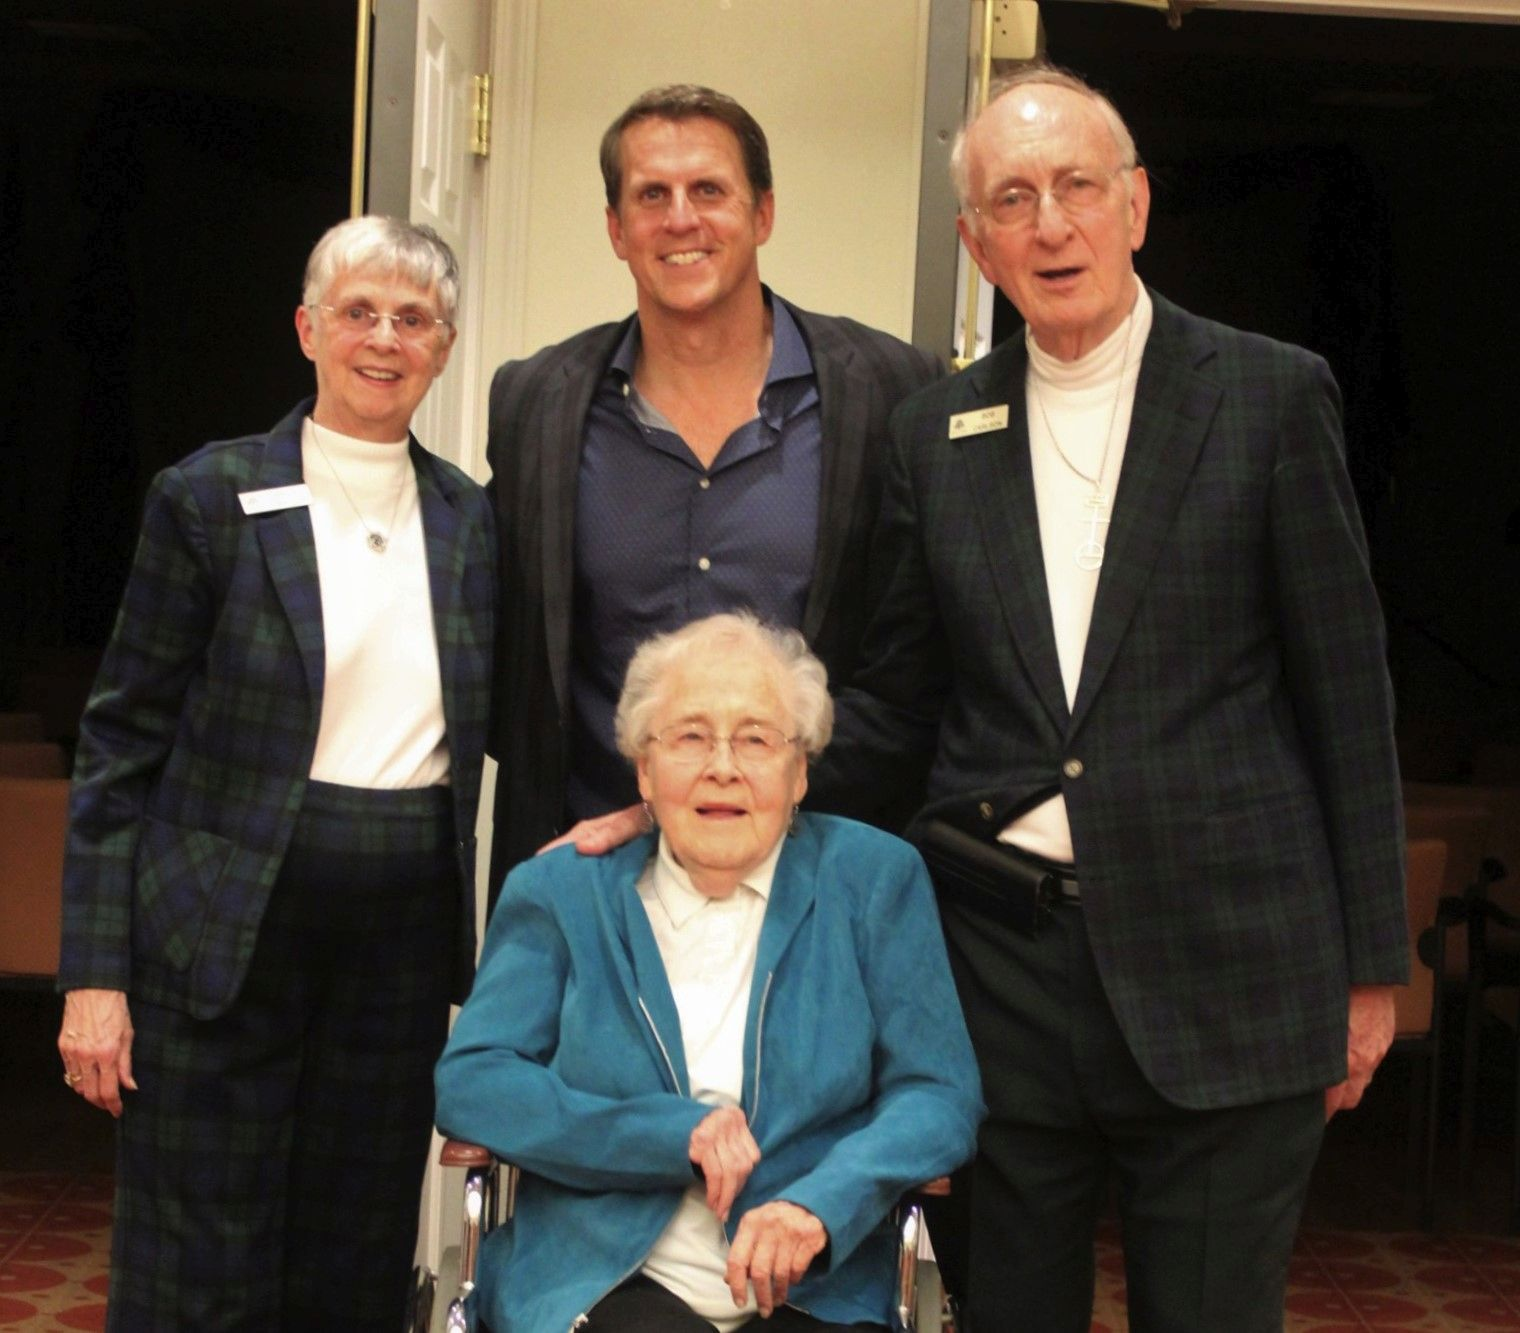 Spellbound Royal Oaks residents awed by world-recognized filmmaker